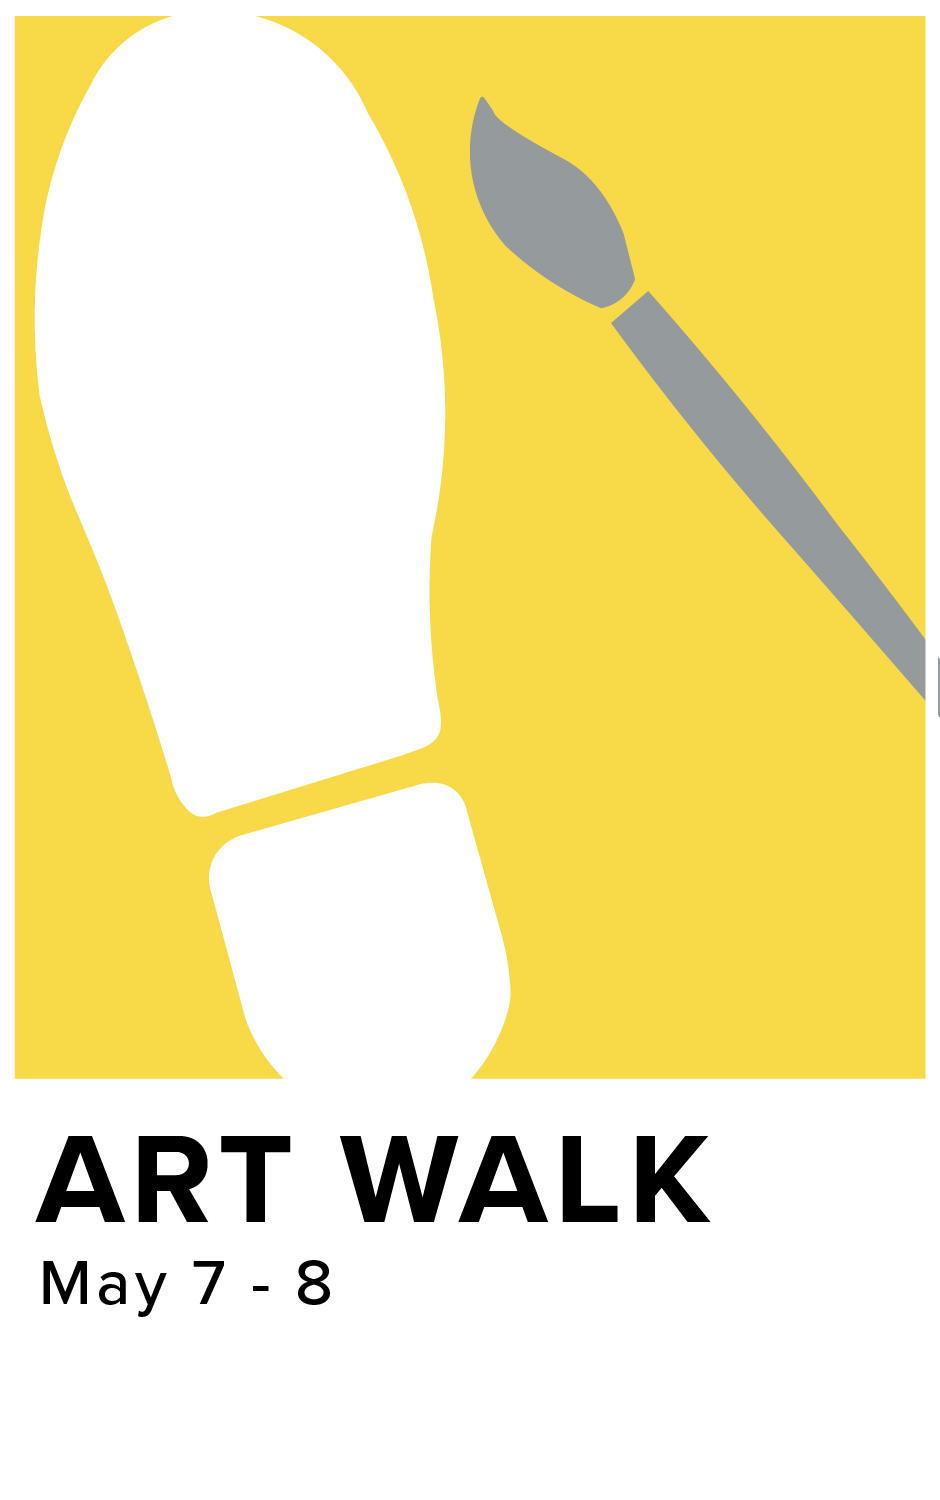 Downtown Traverse City Art Walk – Artists Needed